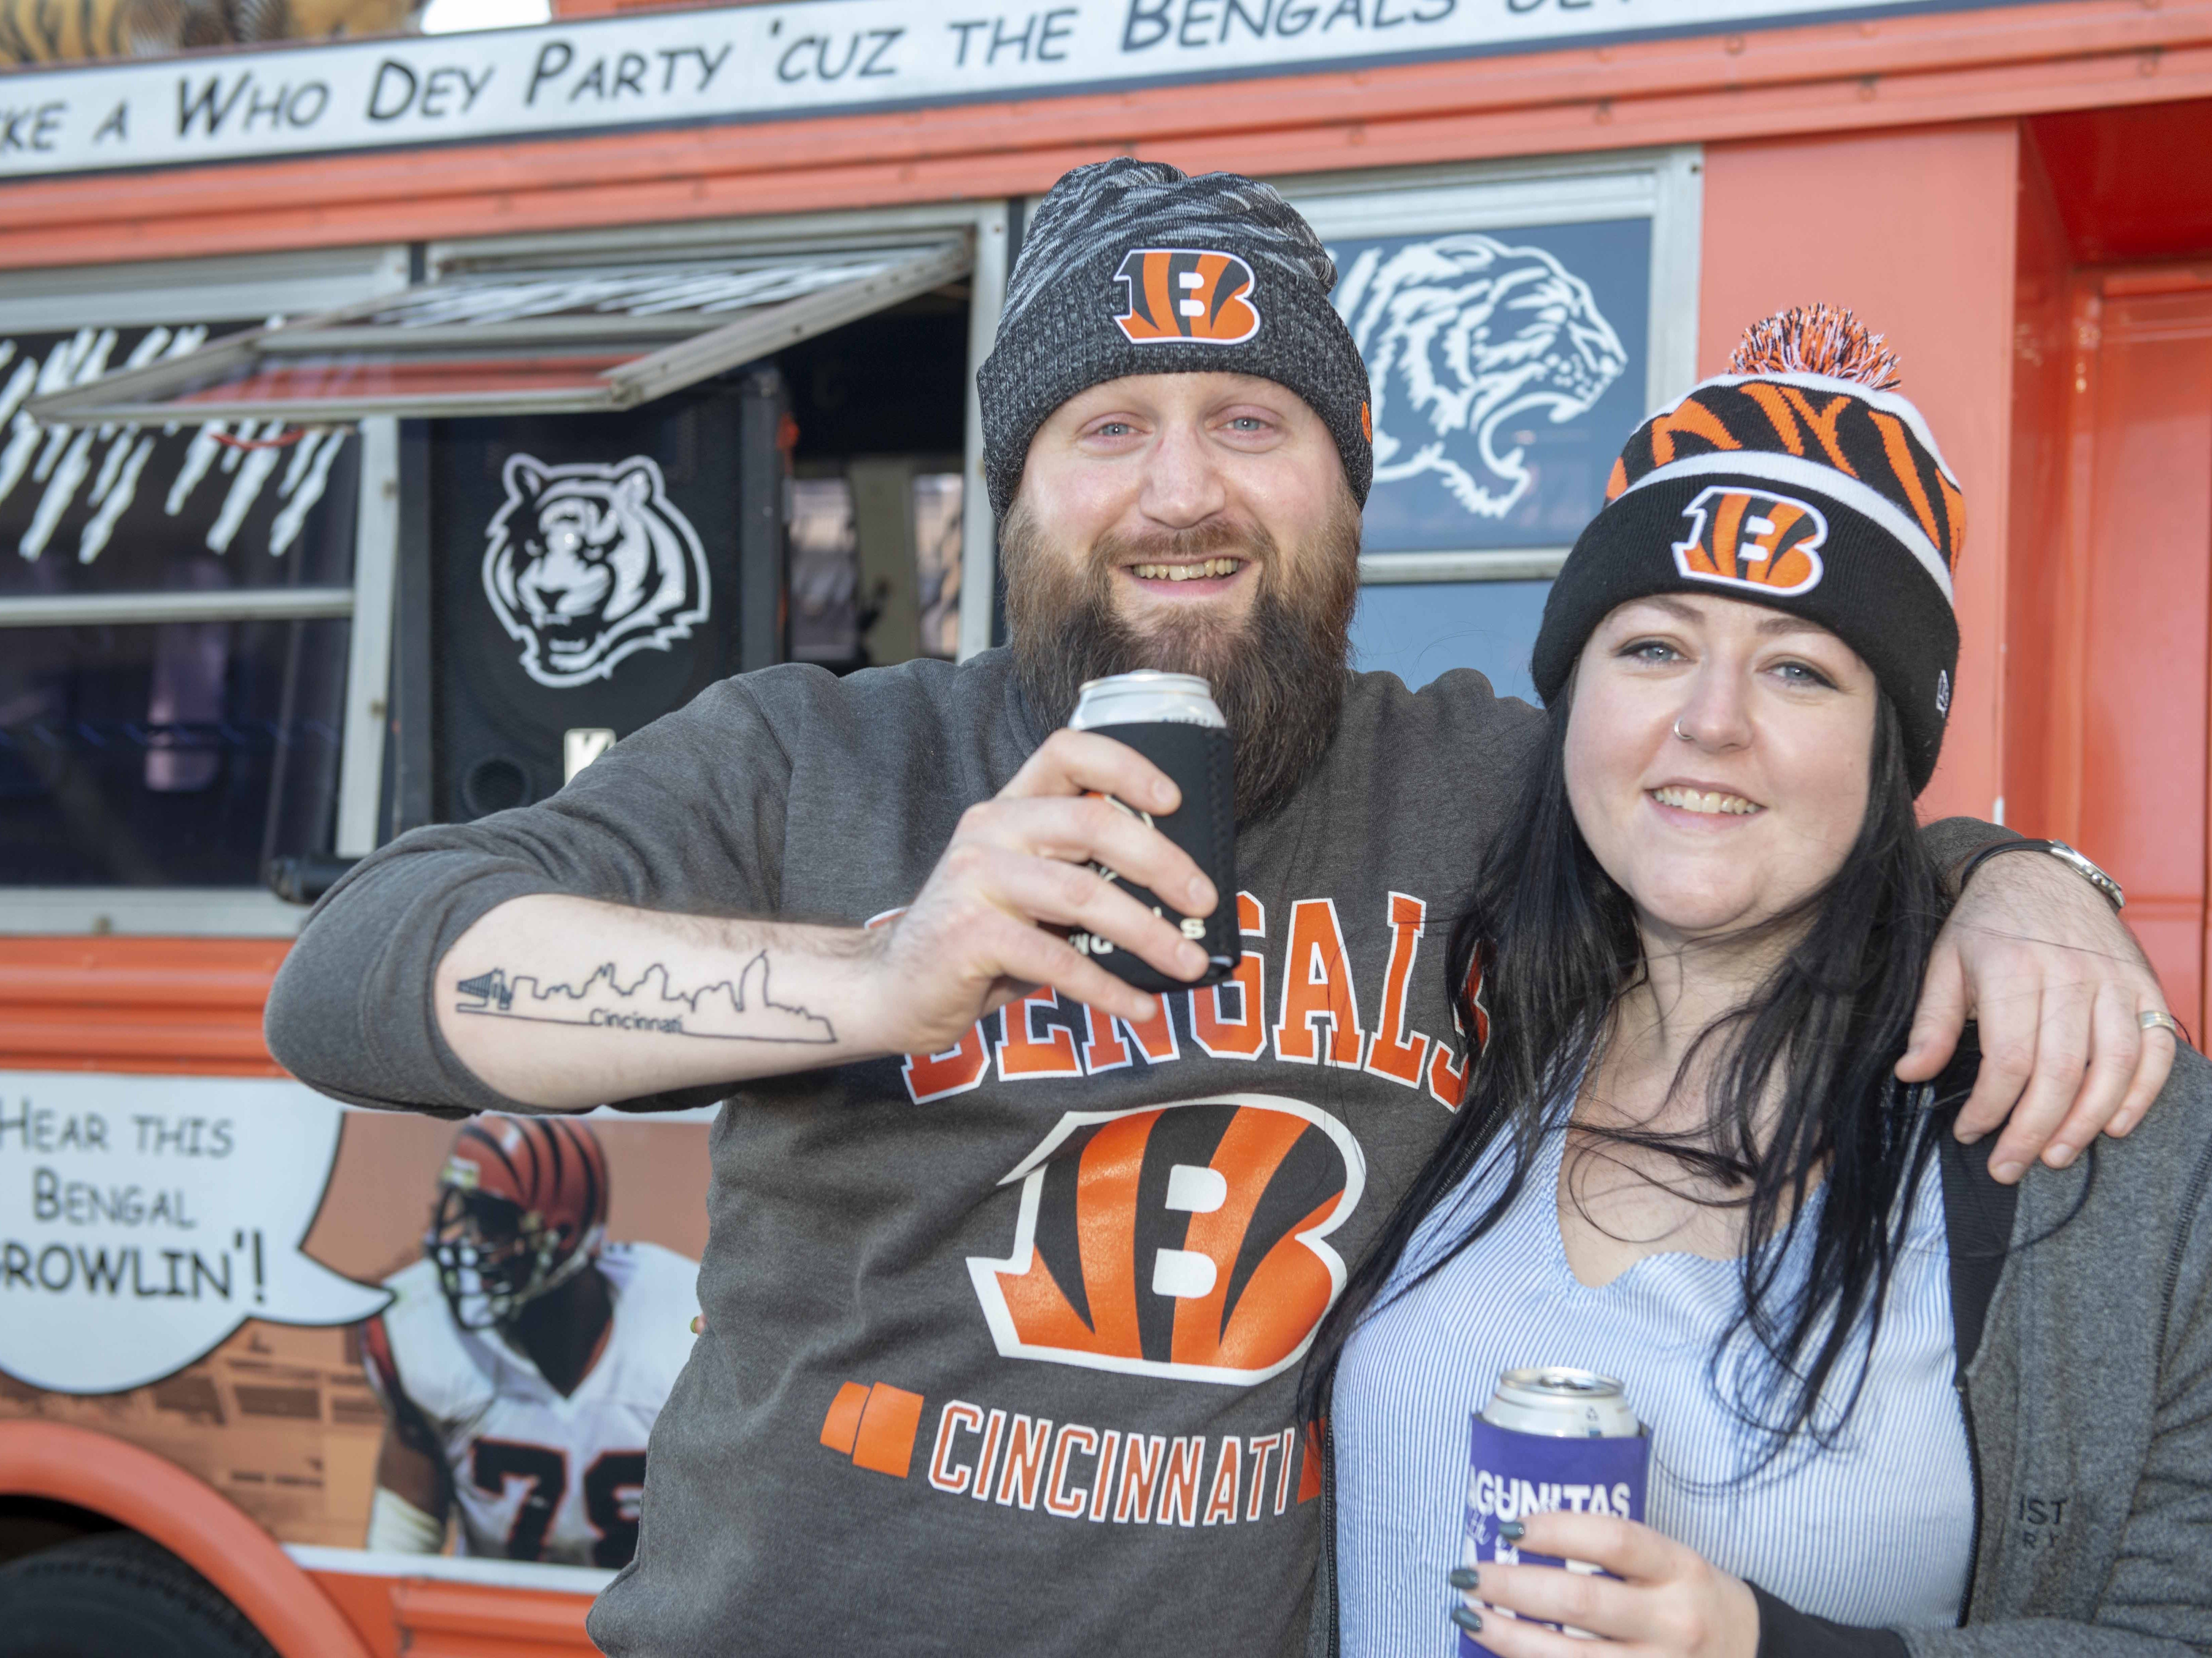 Cincinnati Bengals fans showed up for tailgating parties as the Cincinnati Bengals hosted the Denver Broncos at Paul Brown Stadium Sunday, December 2, 2018. Loyal Cincinnati Bengal fans come from all over the globe.  Scott Gibb and Vicky Caird come for the tailgating and the game from Edinburgh, Scotland.